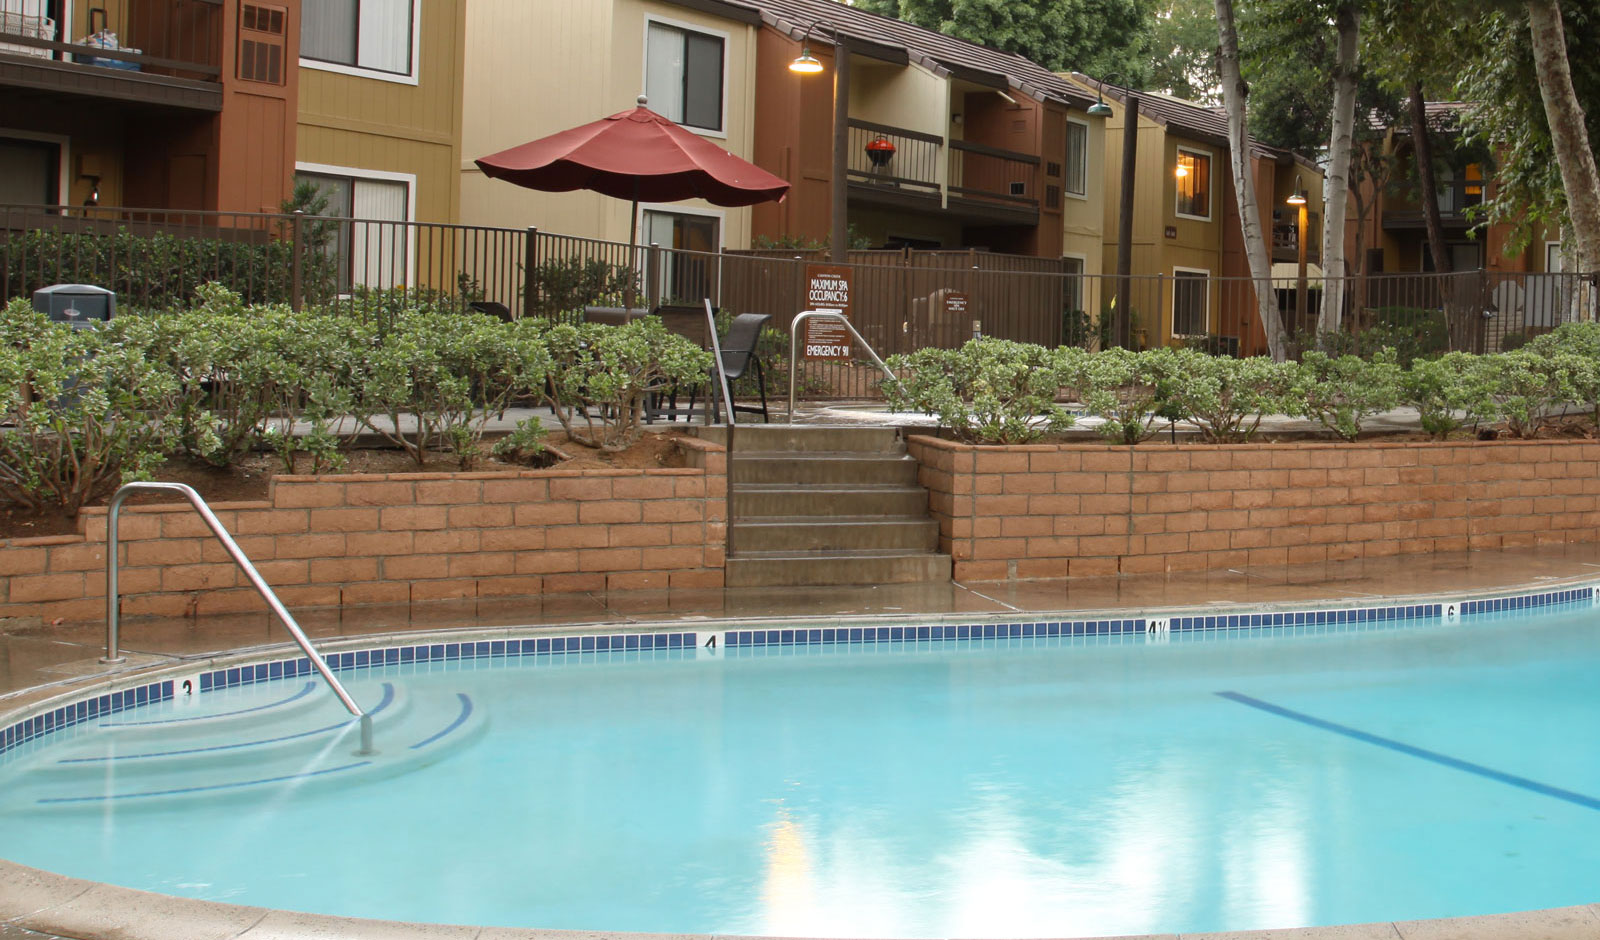 1 2 amp 3 bedroom apartments in riverside with a swimming pool luxury 1 2 amp 3 bedroom apartments in riverside ca